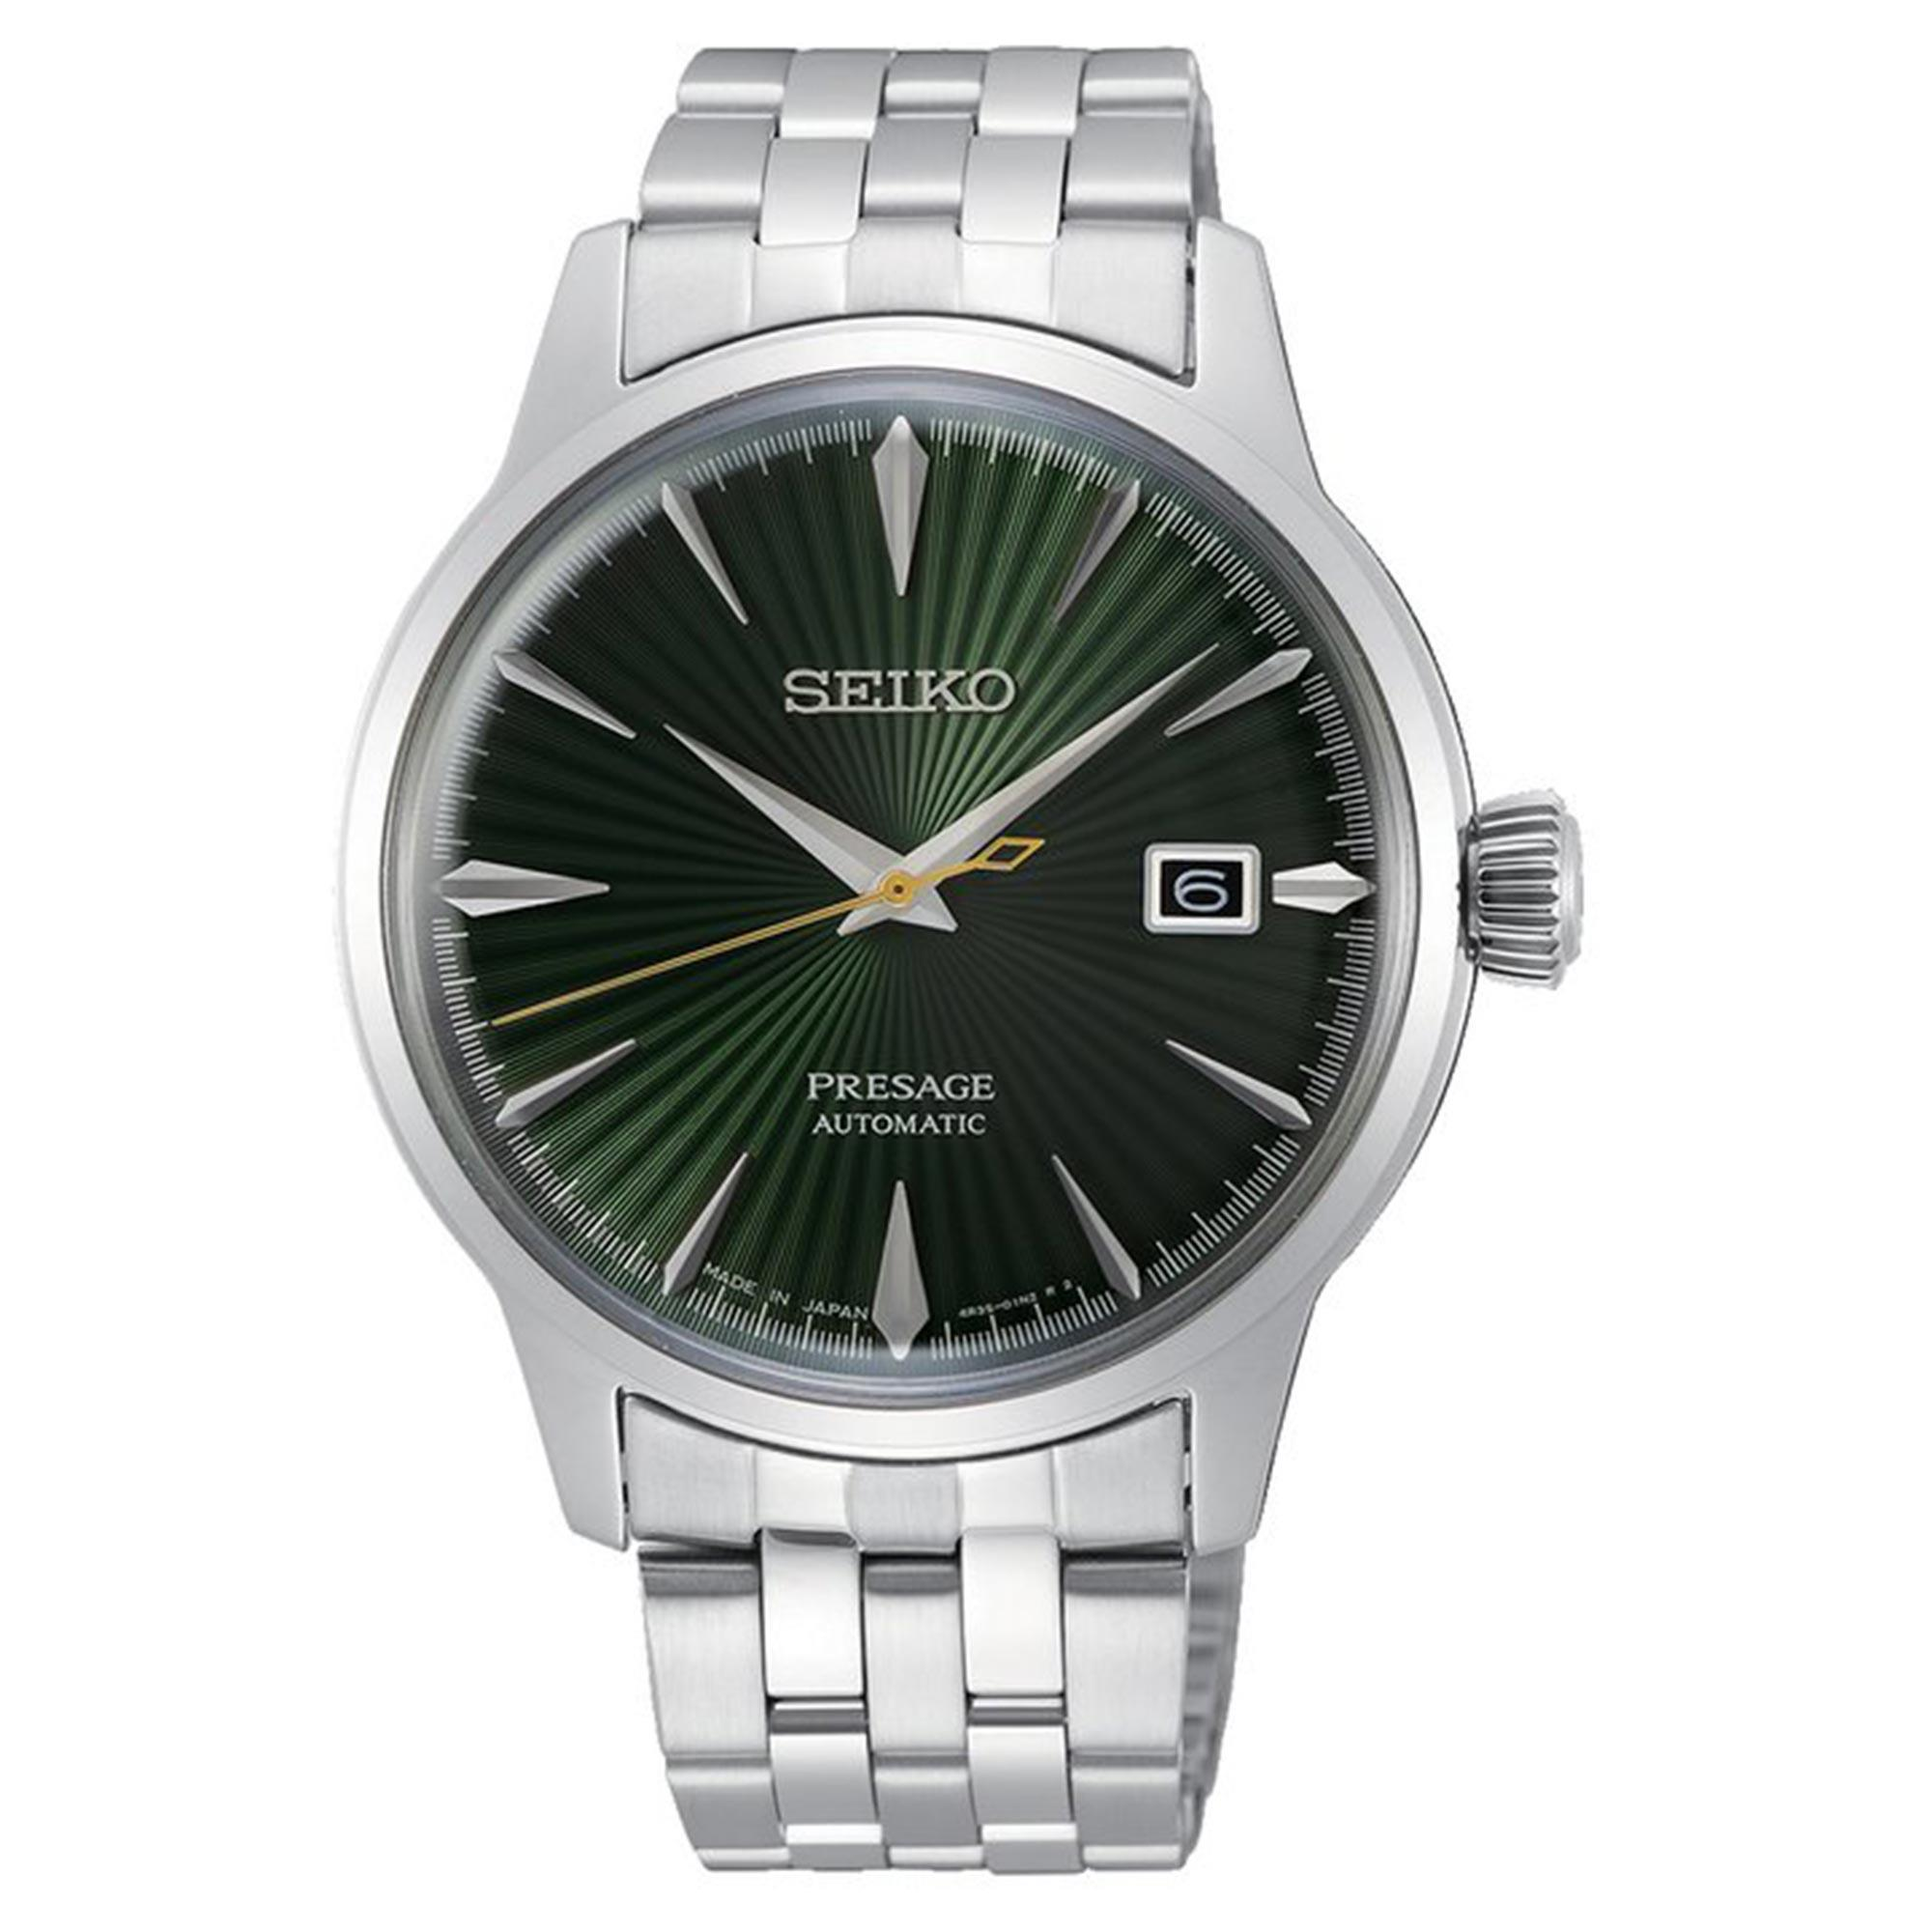 Seiko Presage Cocktail Time 'Mockingbird' Automatic Green Dial Silver Stainless Steel Men's Watch SRPE15J1 RRP £400